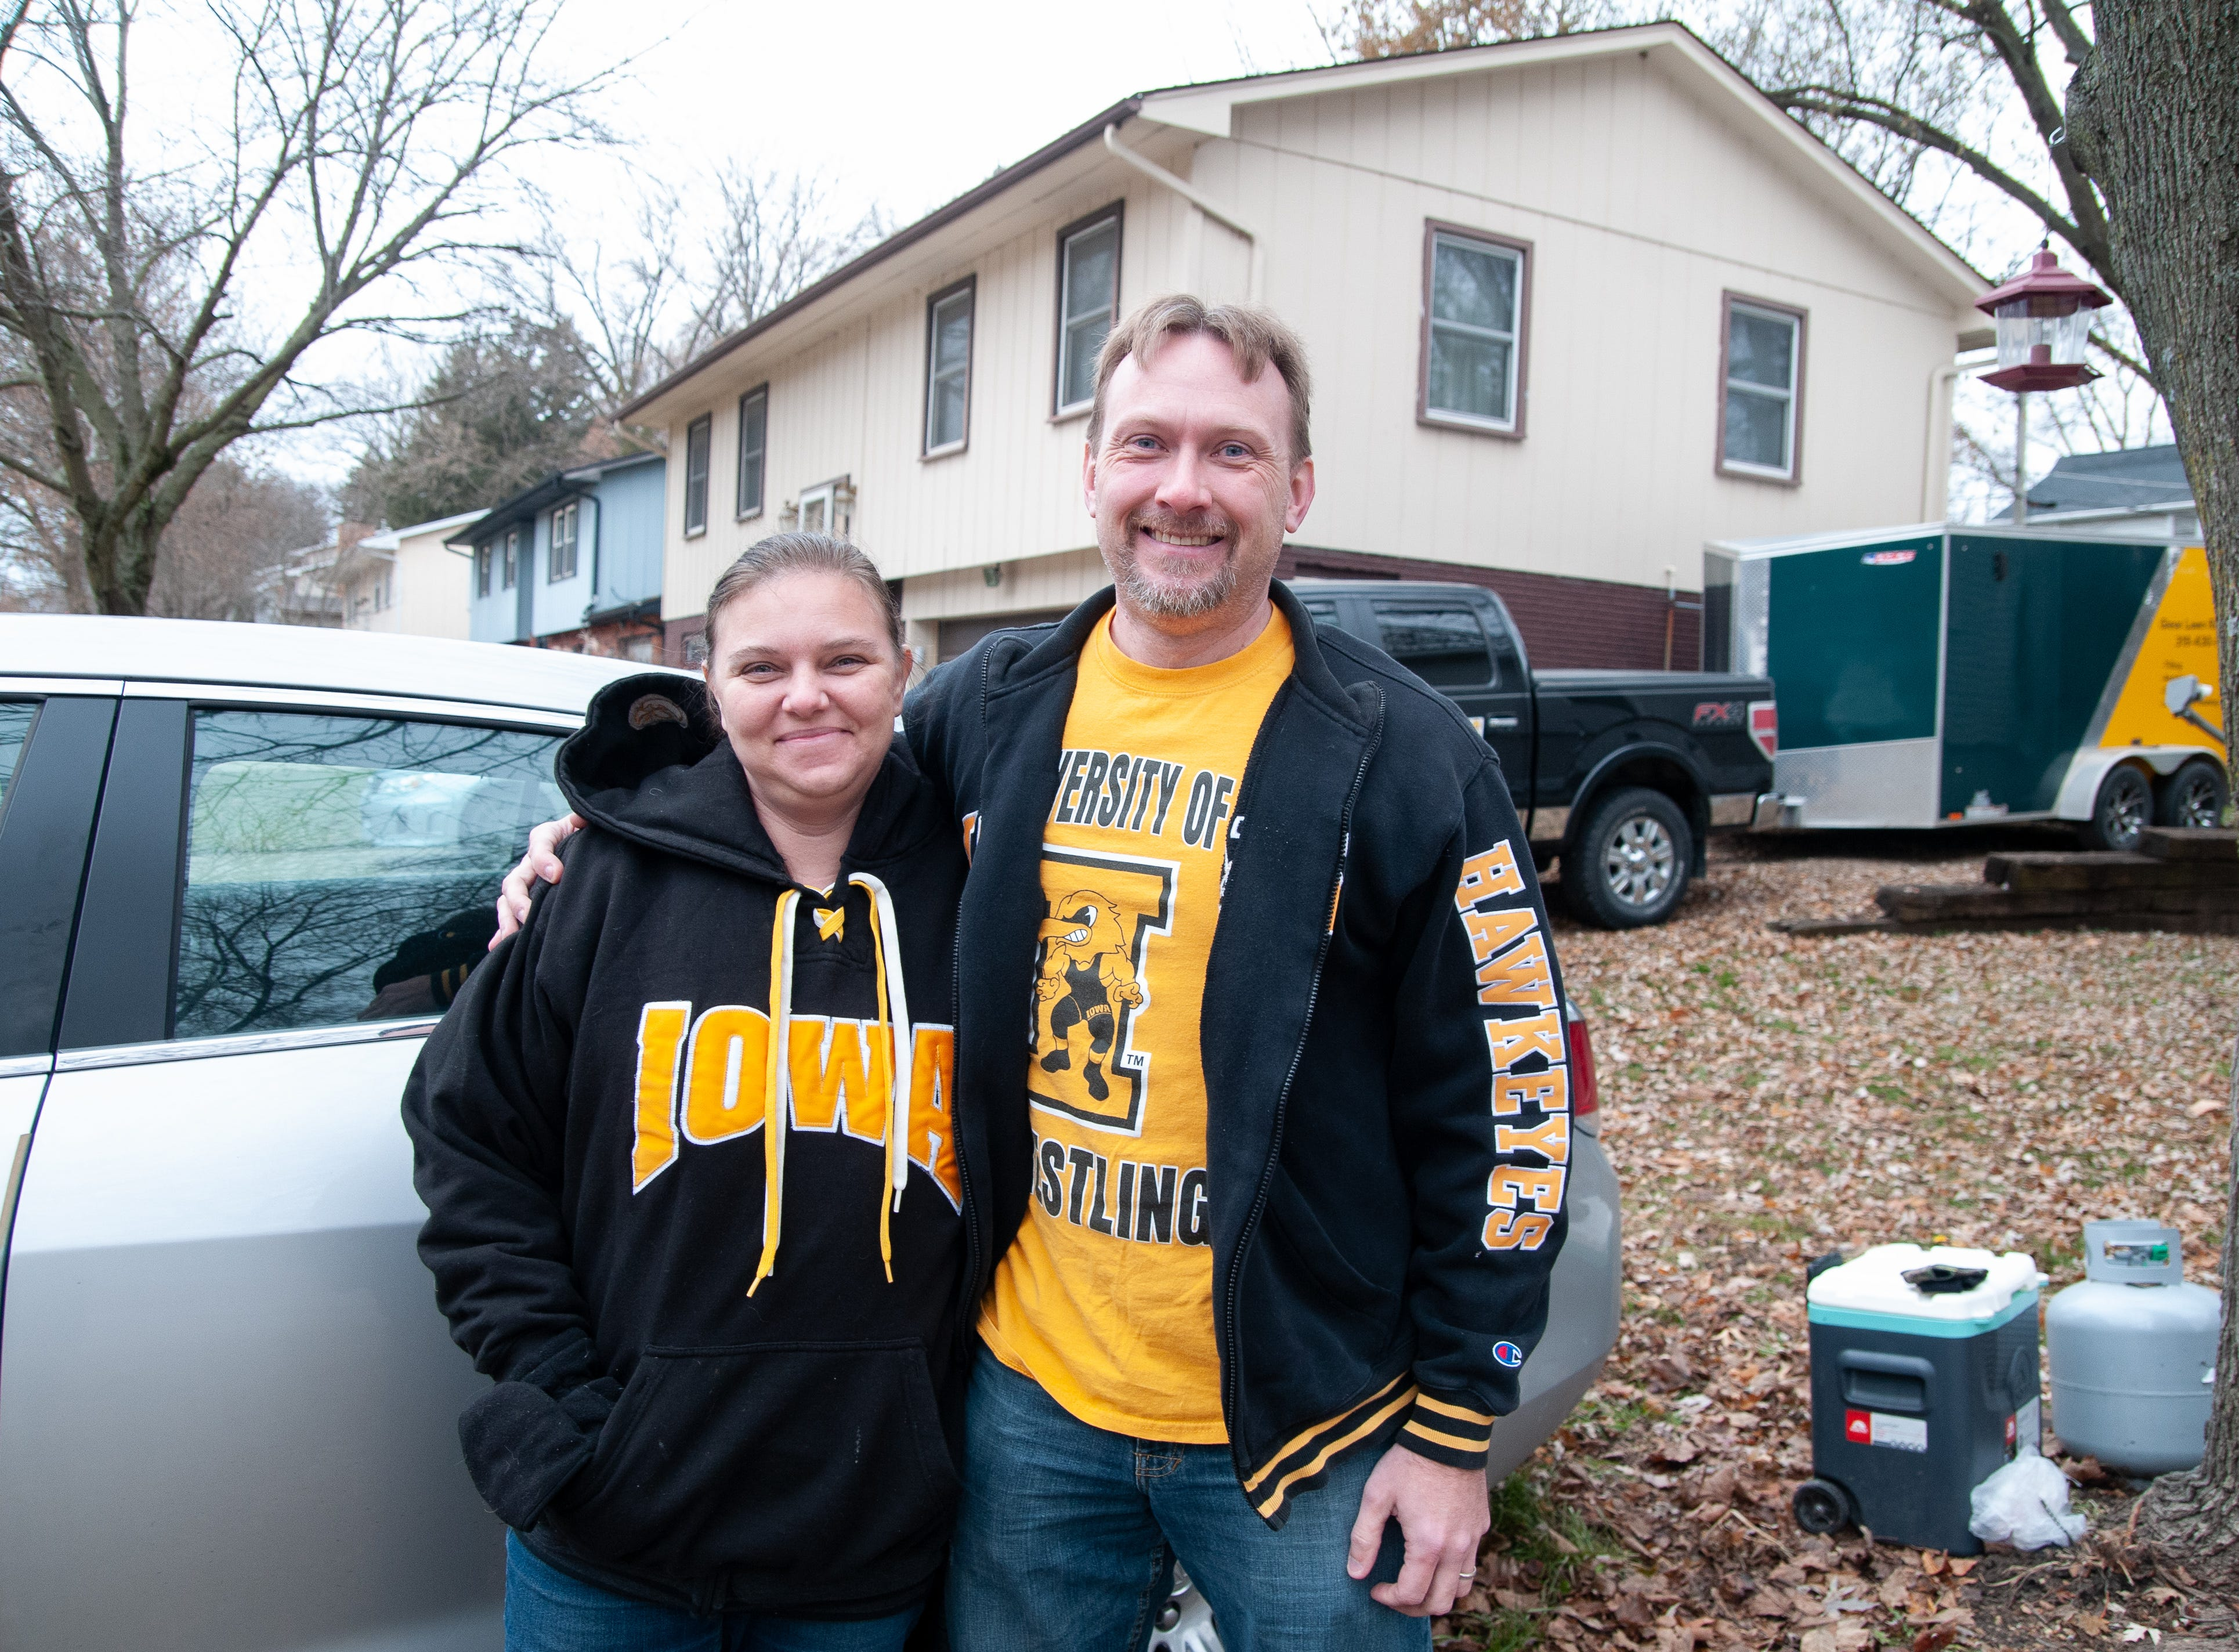 Julee, left, and Heath Reed, of Davenport, Friday, Nov. 23, 2018, while tailgating before the Iowa game against Nebraska in Iowa City.